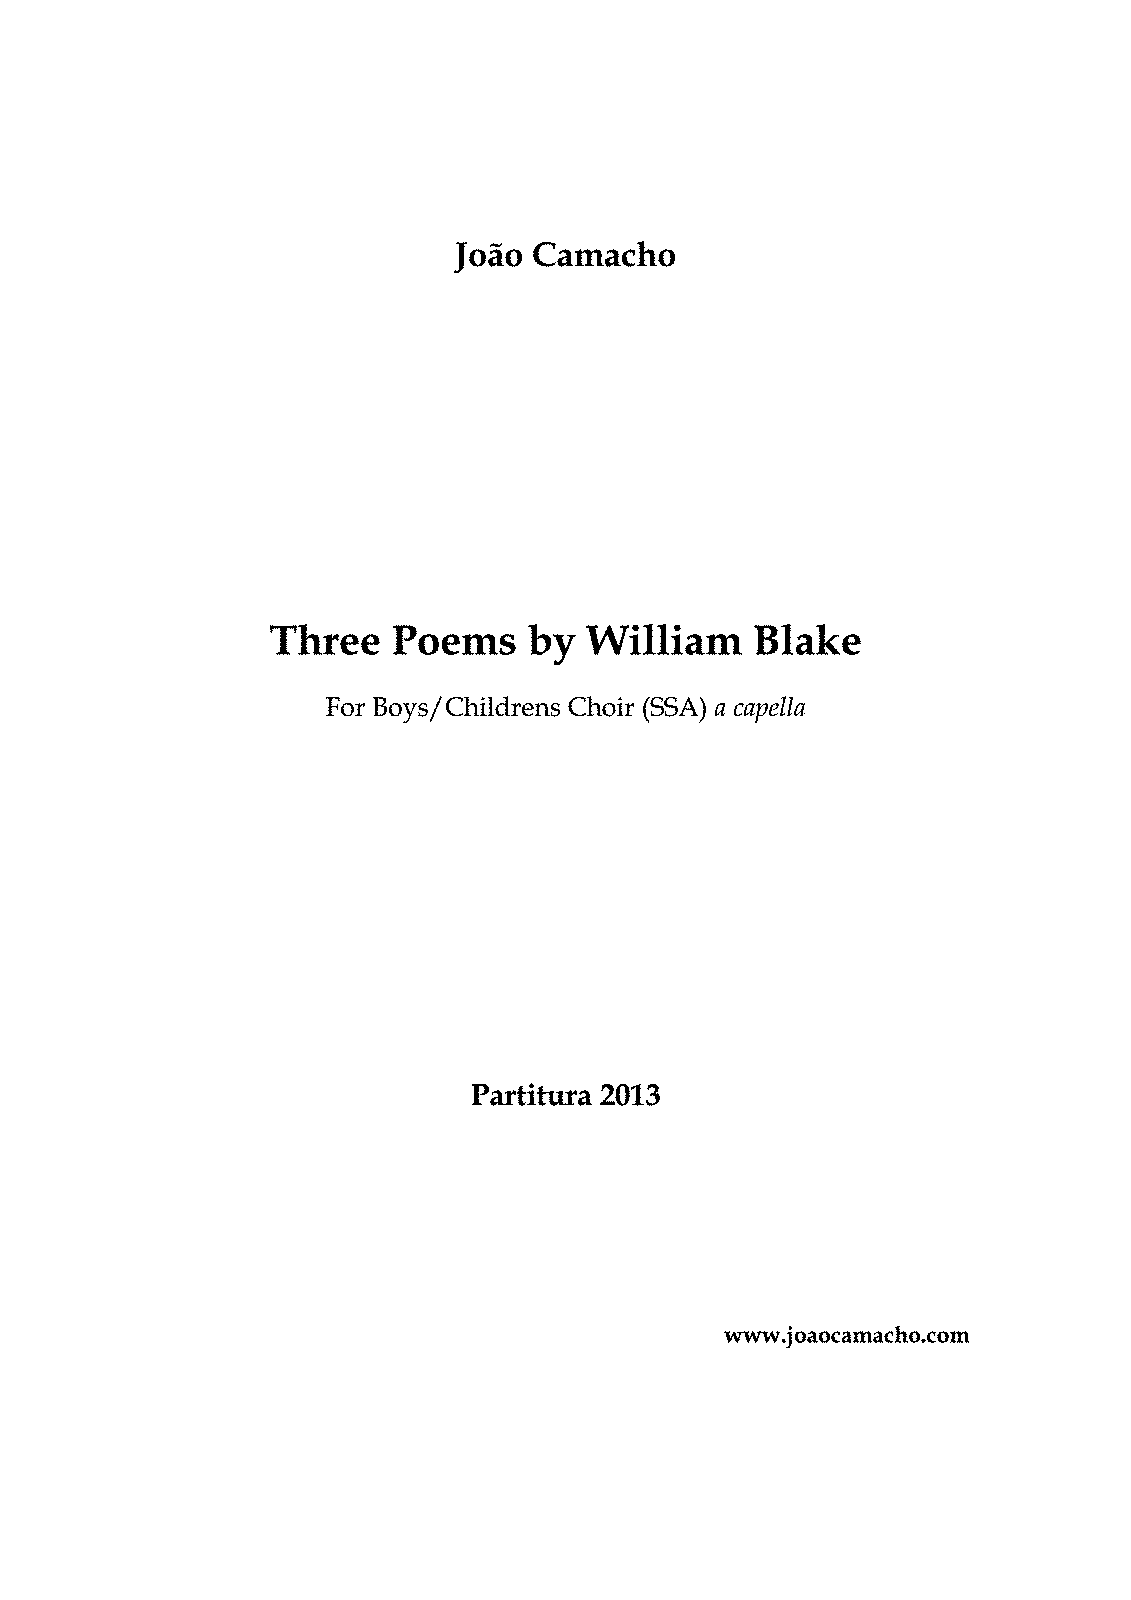 PMLP550137-Three poems by William Blake -complete-.pdf